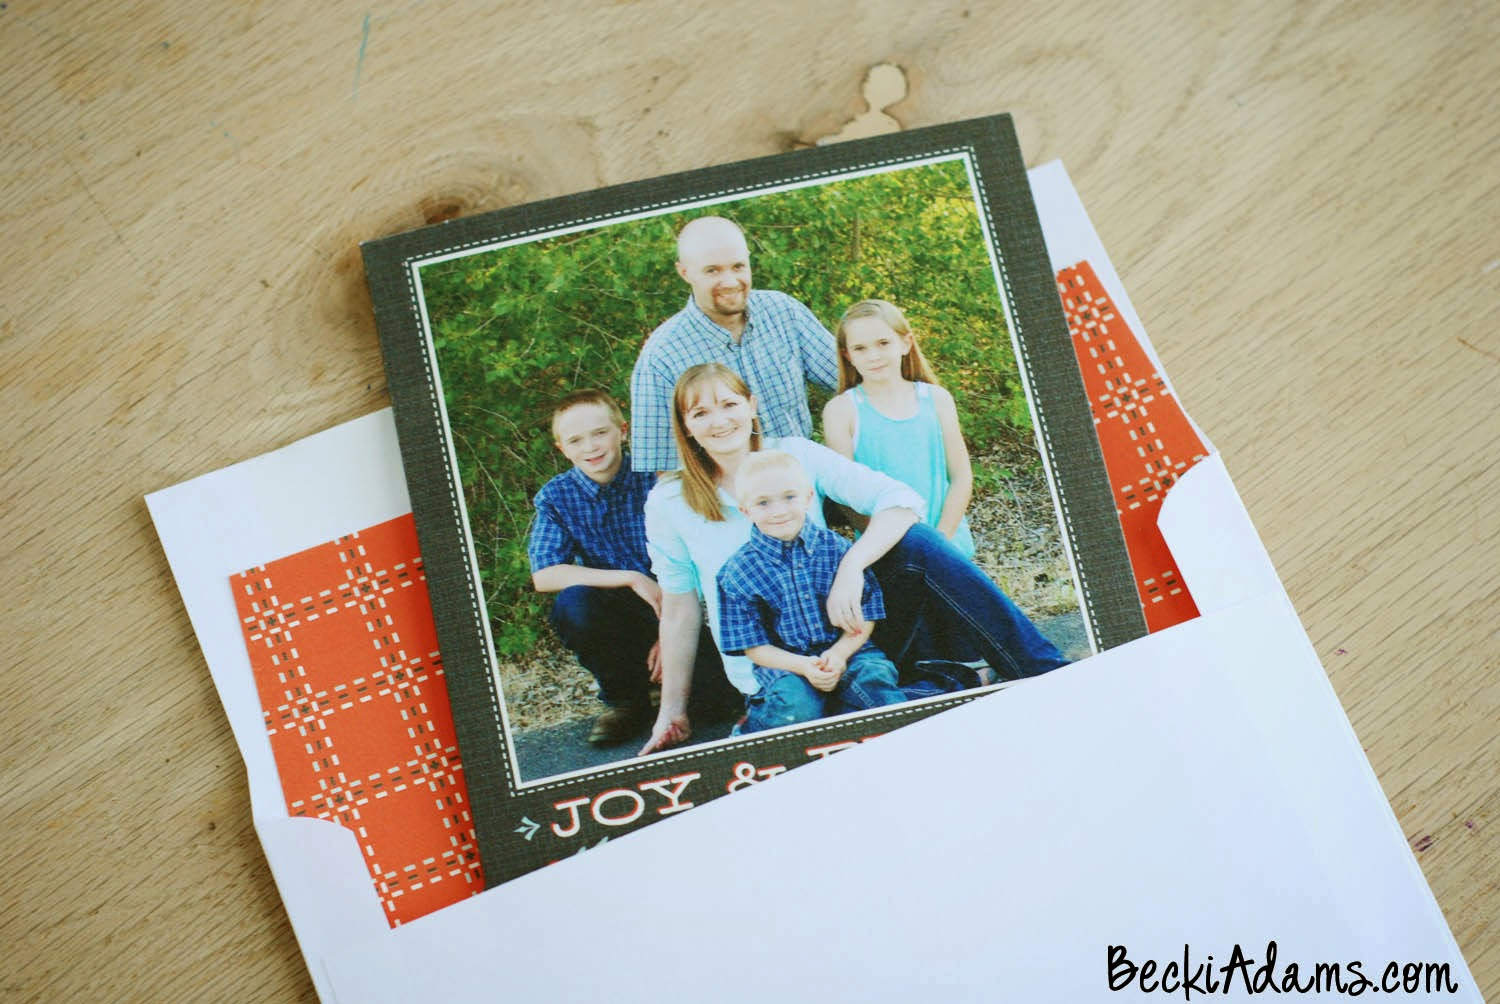 Personalized Christmas cards created by Becki Adams @jbckadams for @tiny_prints #christmascard #tinyprints #christmas #holidaycard #personalizedchristmascard